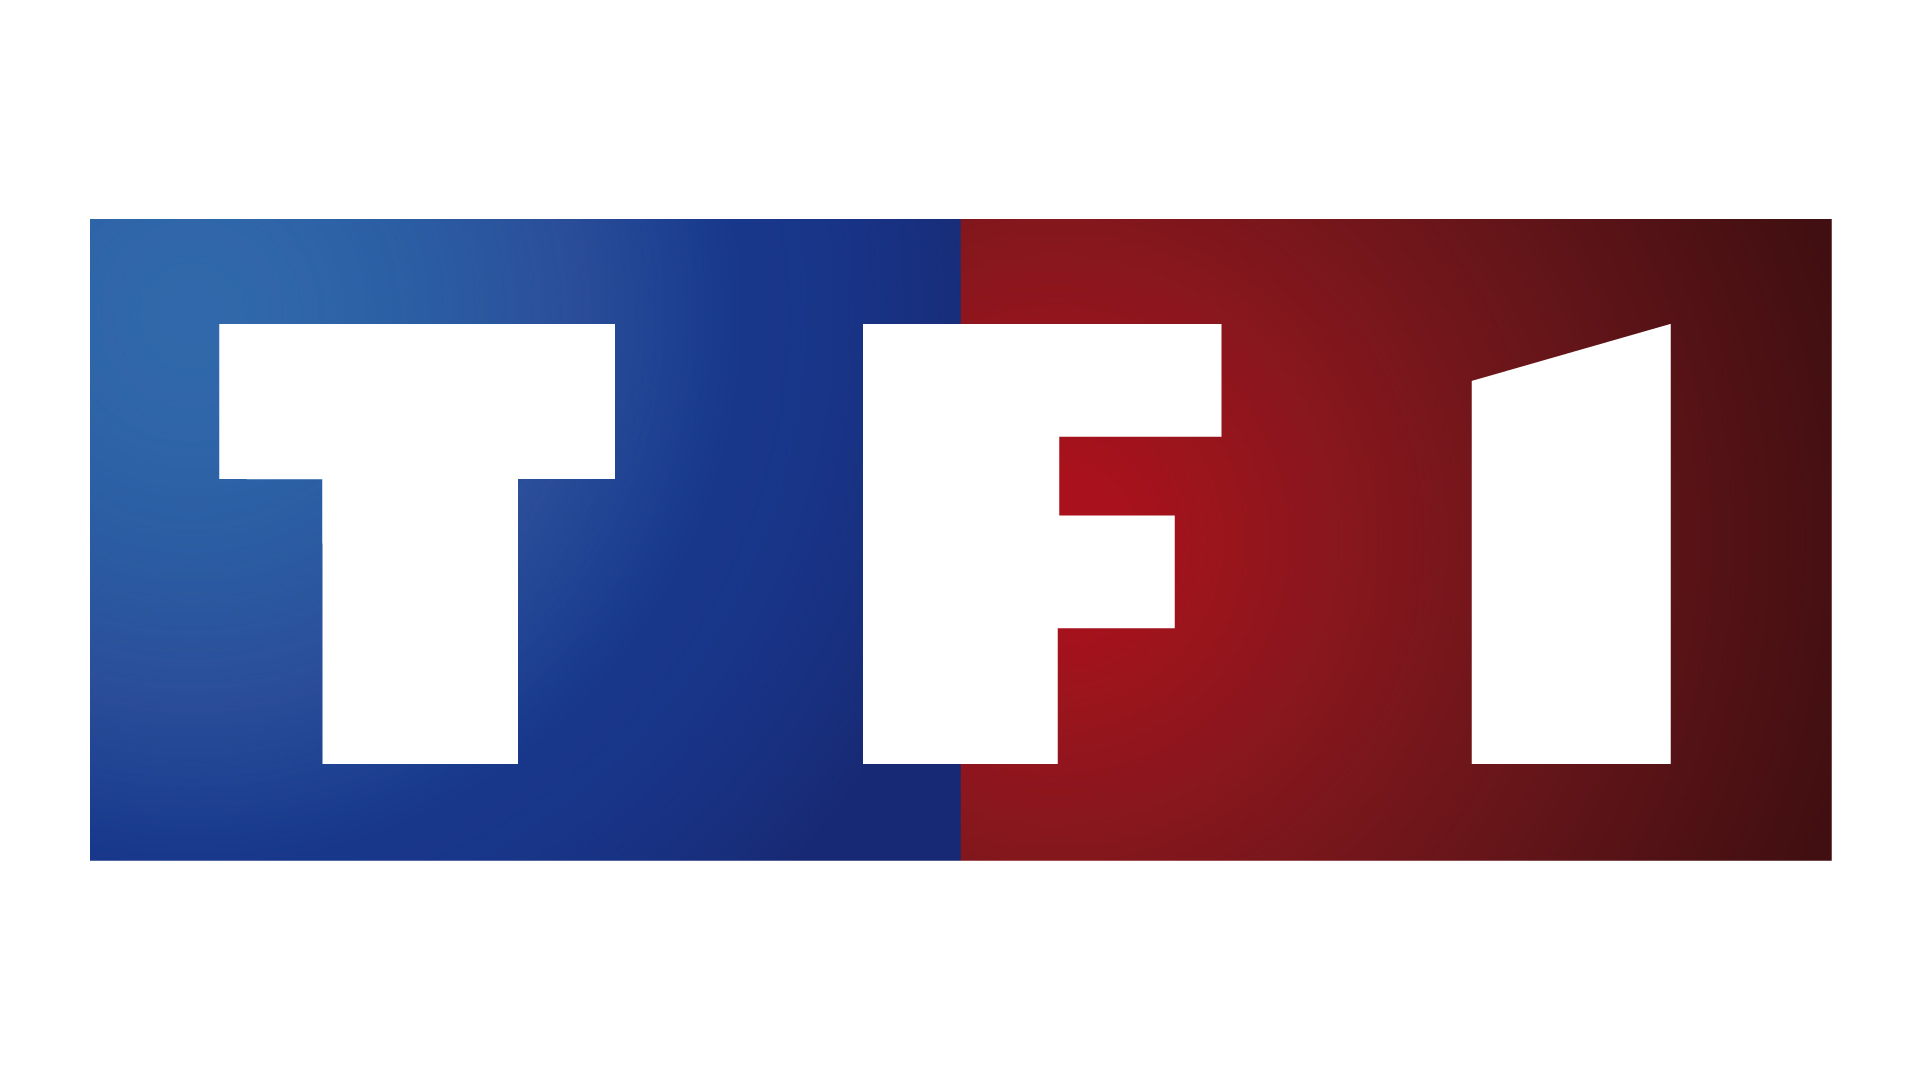 Information on stock, financials, earnings, subsidiaries, investors, and executives for tf1 groupe. TF1 Group